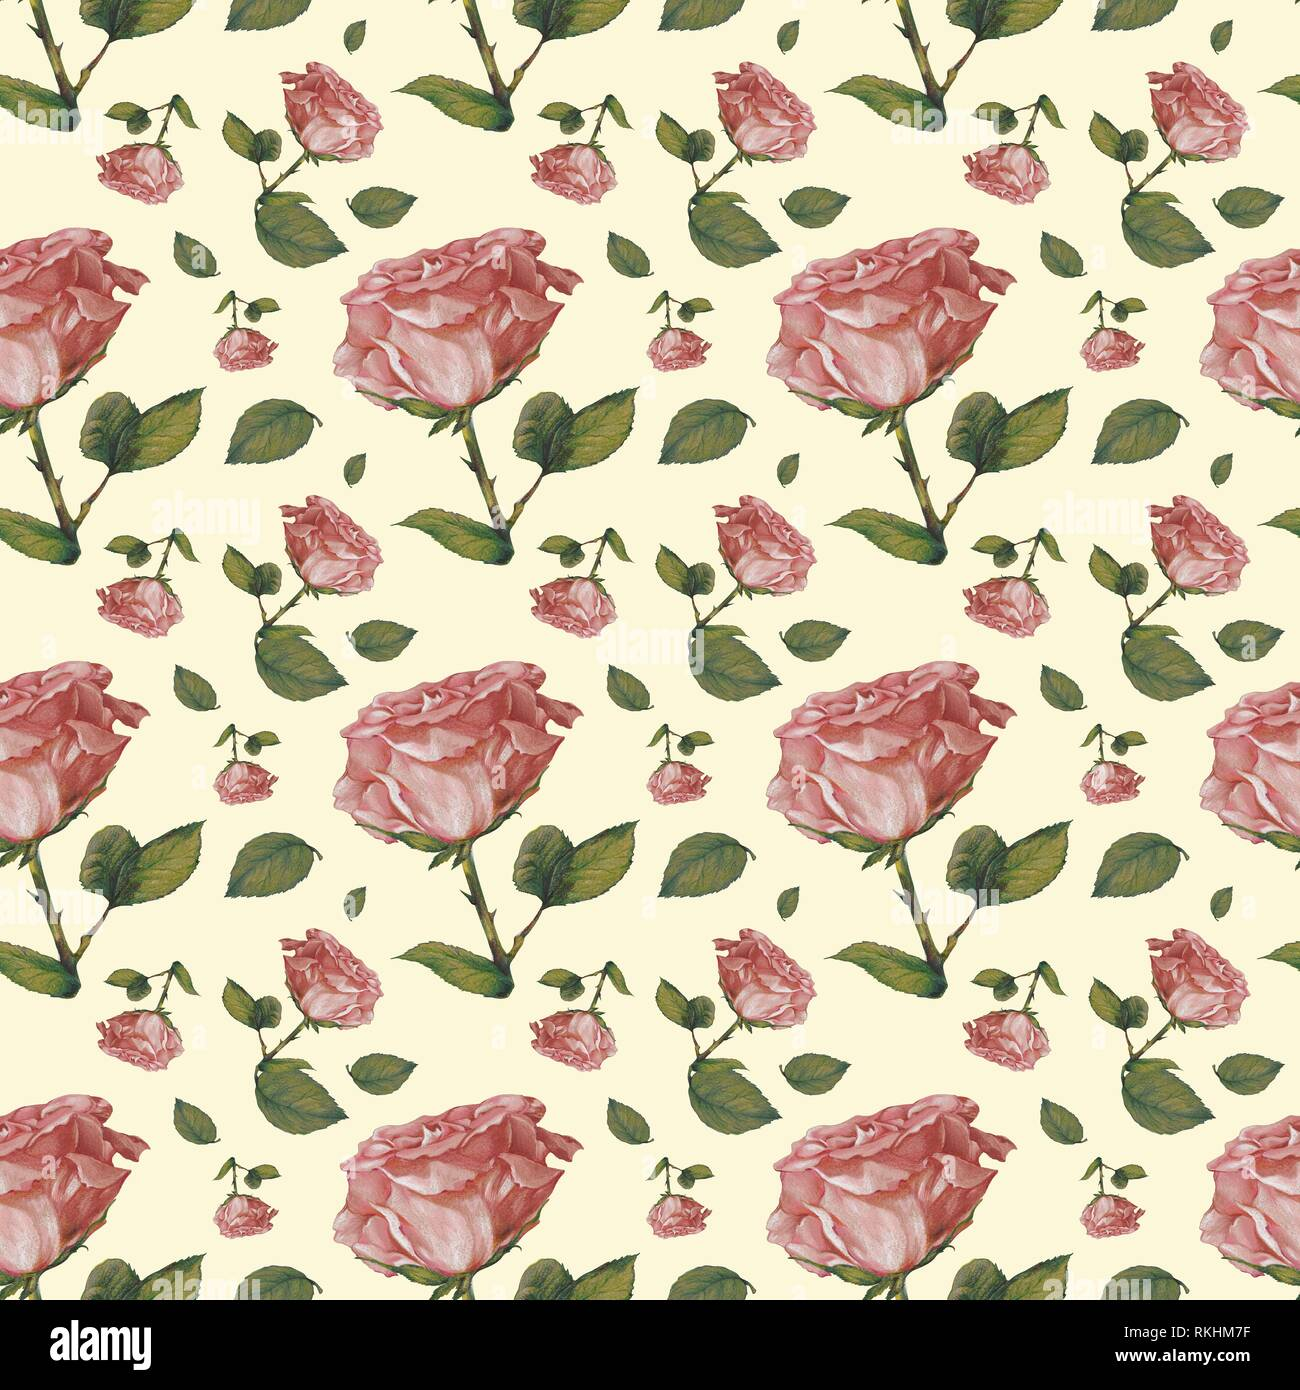 Wallpaper Wrapping Paper Seamless Pattern Old Pink Roses Background Cream Germany